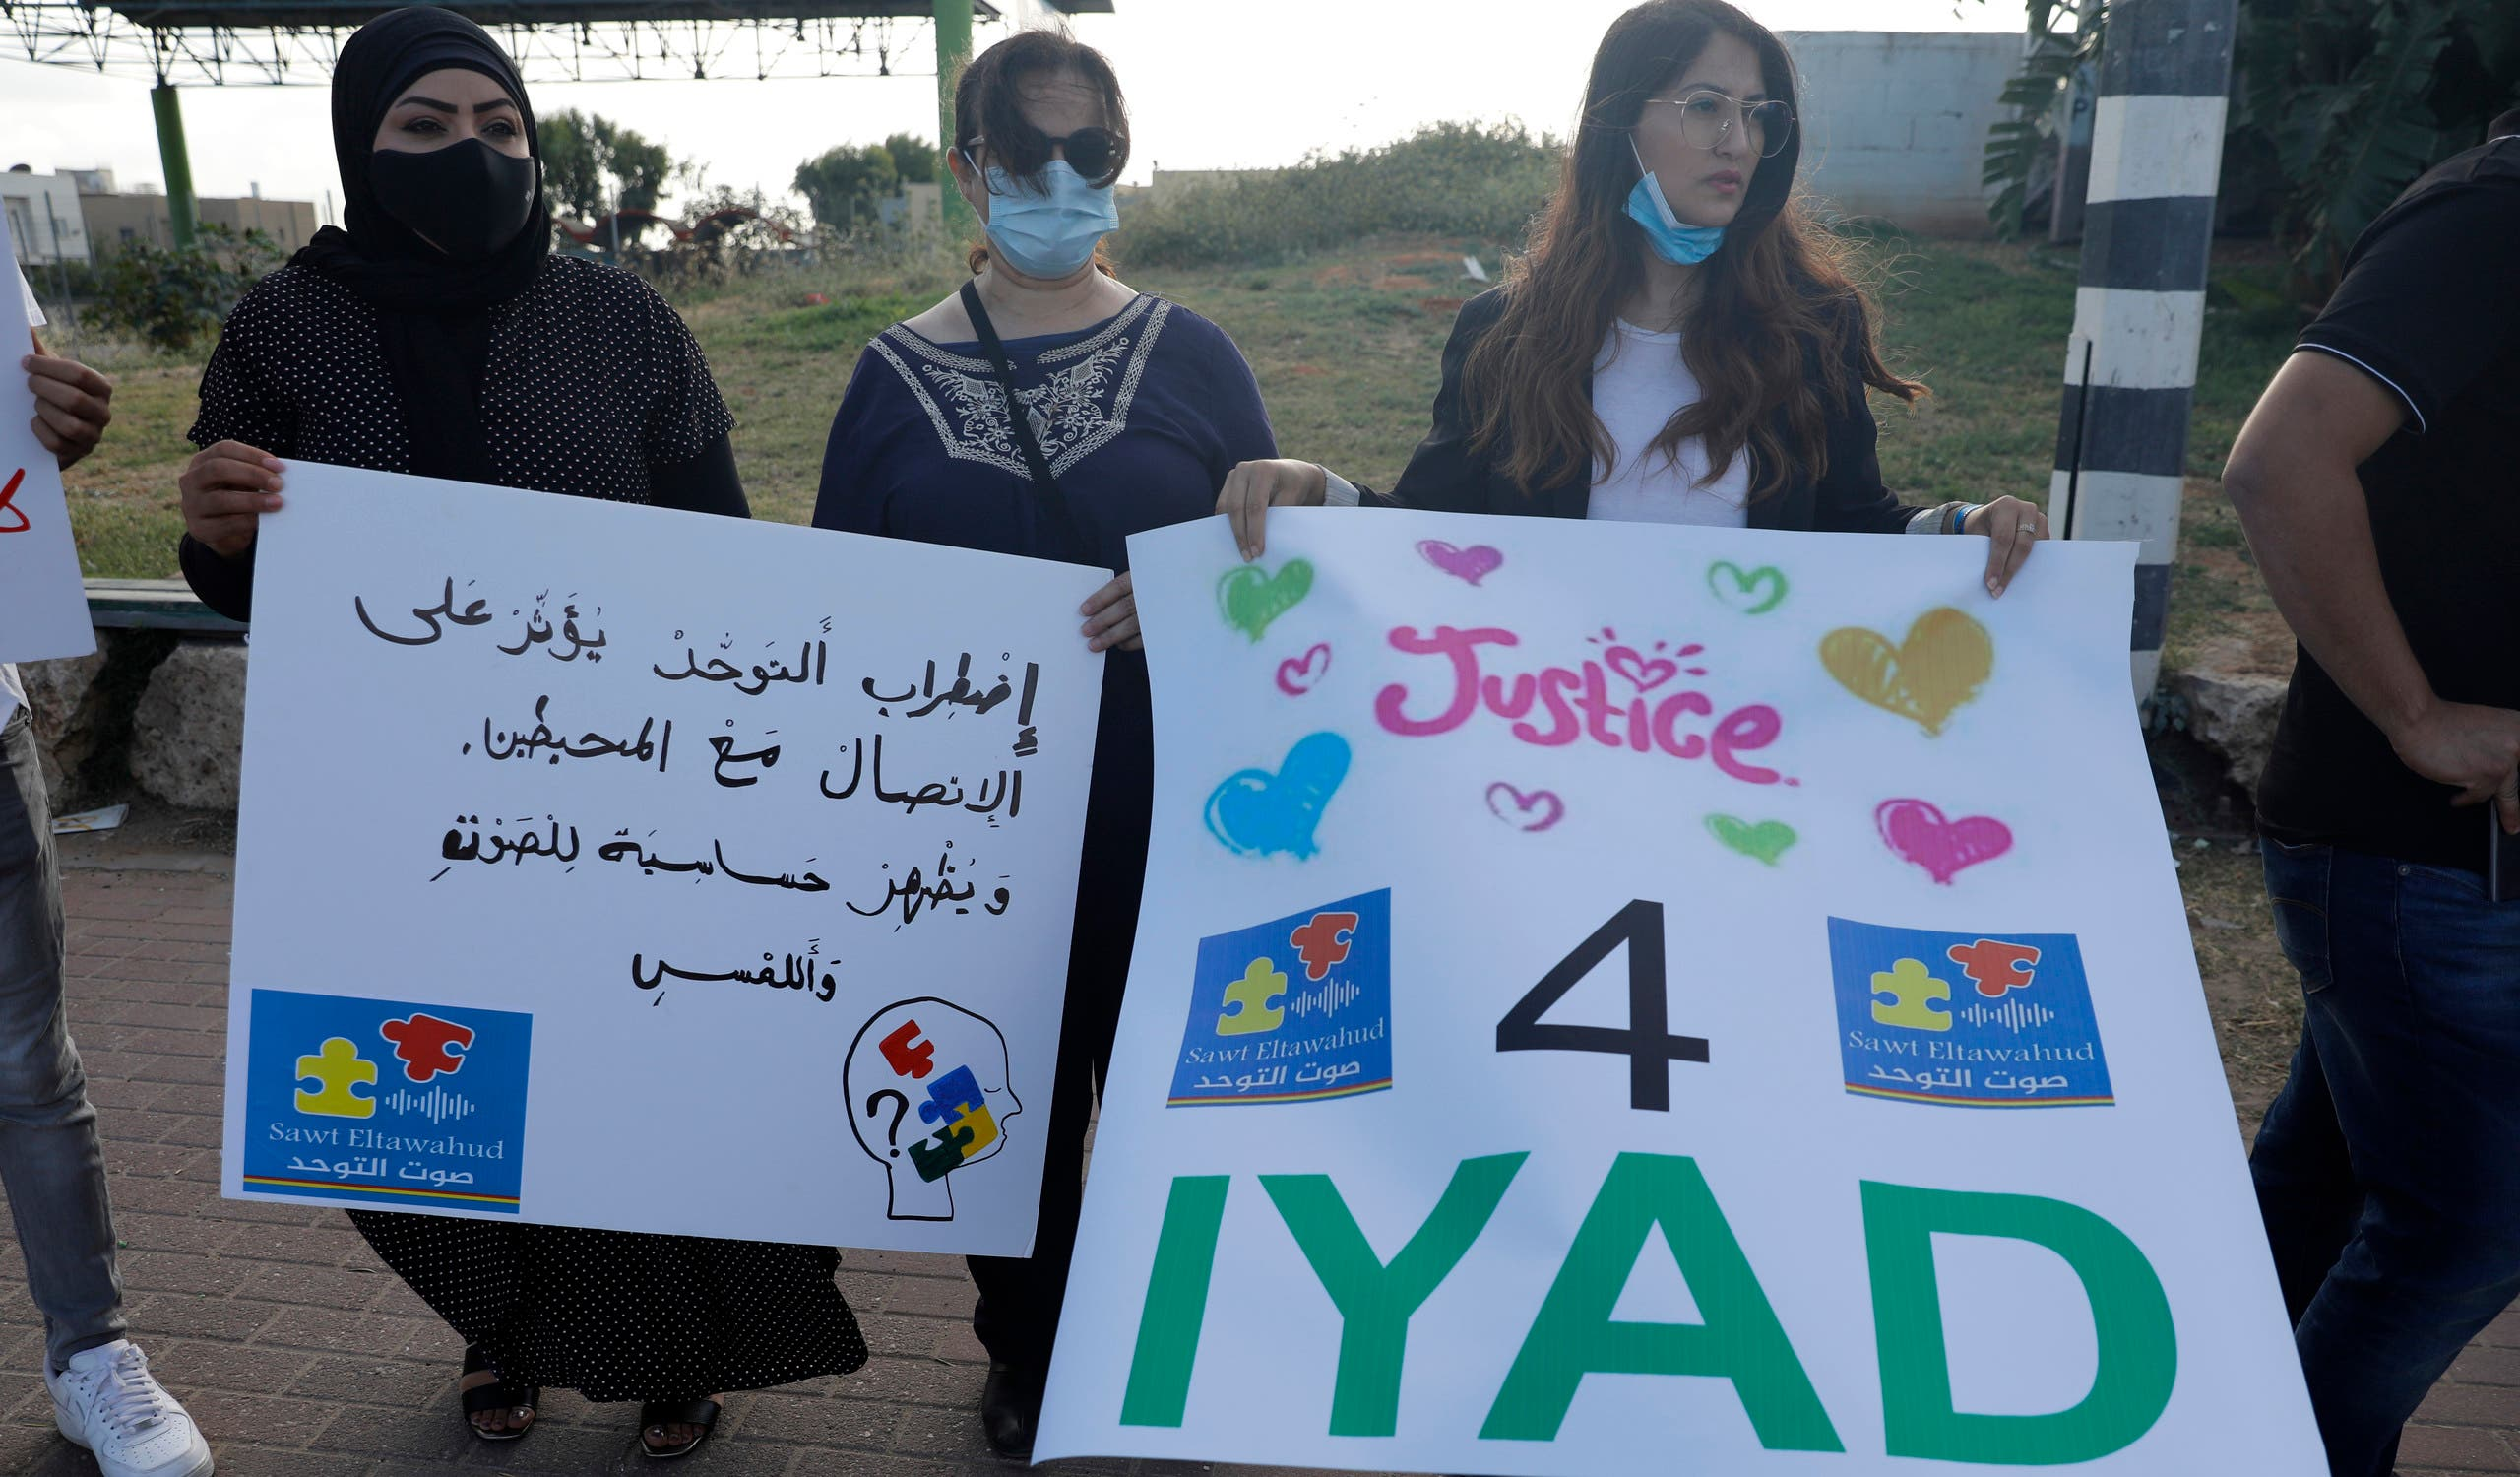 Arab-Israeli demonstrators, members of an Autism awareness group, gather in the northern Israeli City of Tayyiba on June 2, 2020, to protest against the killing of Iyad Hallak. (AFP)